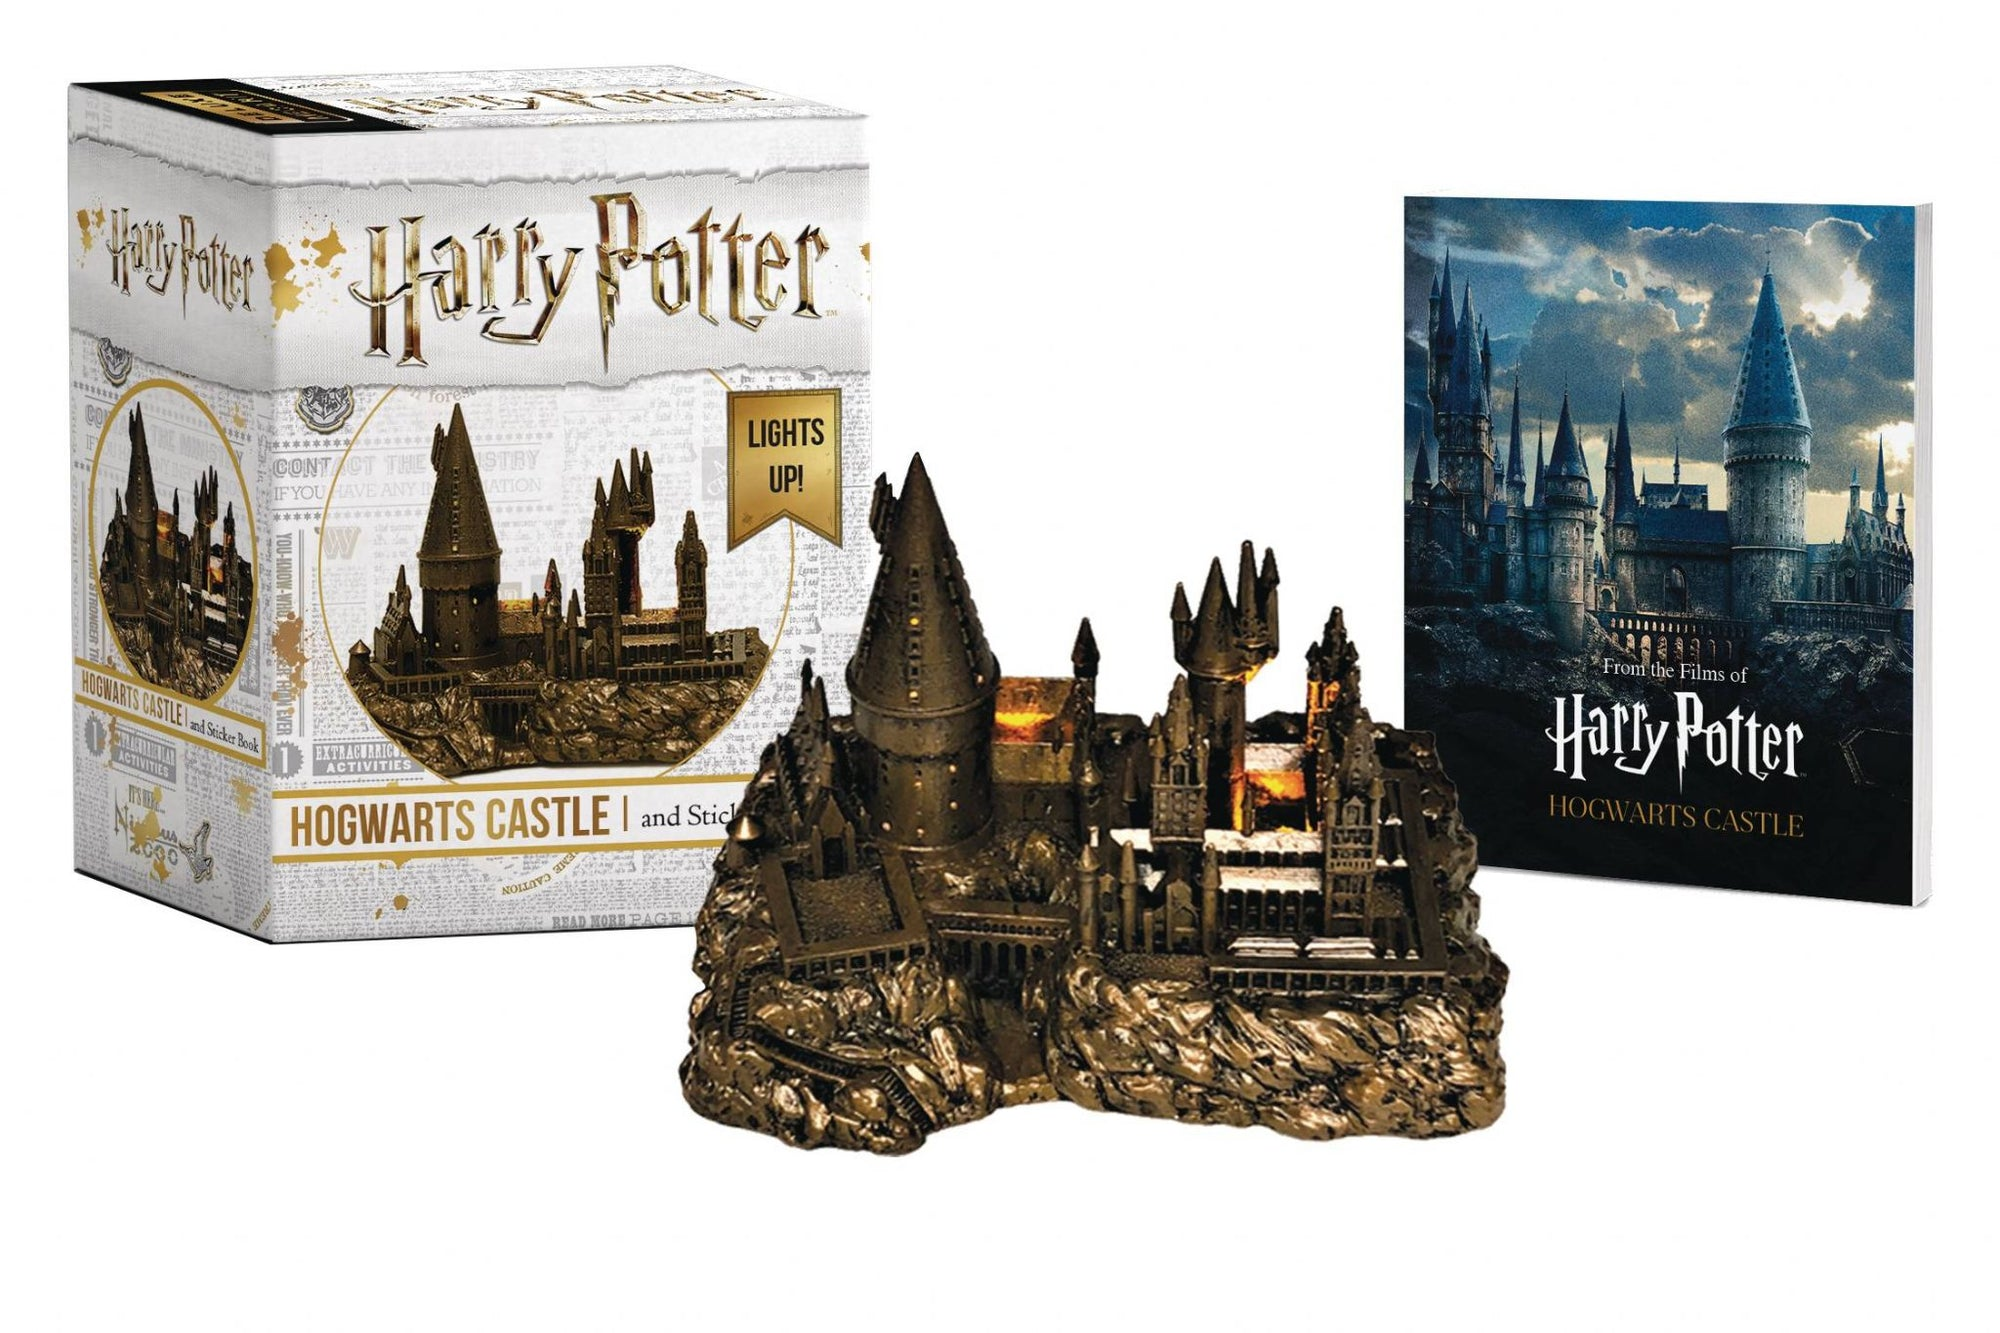 Harry Potter: Hogwarts Castle Kit